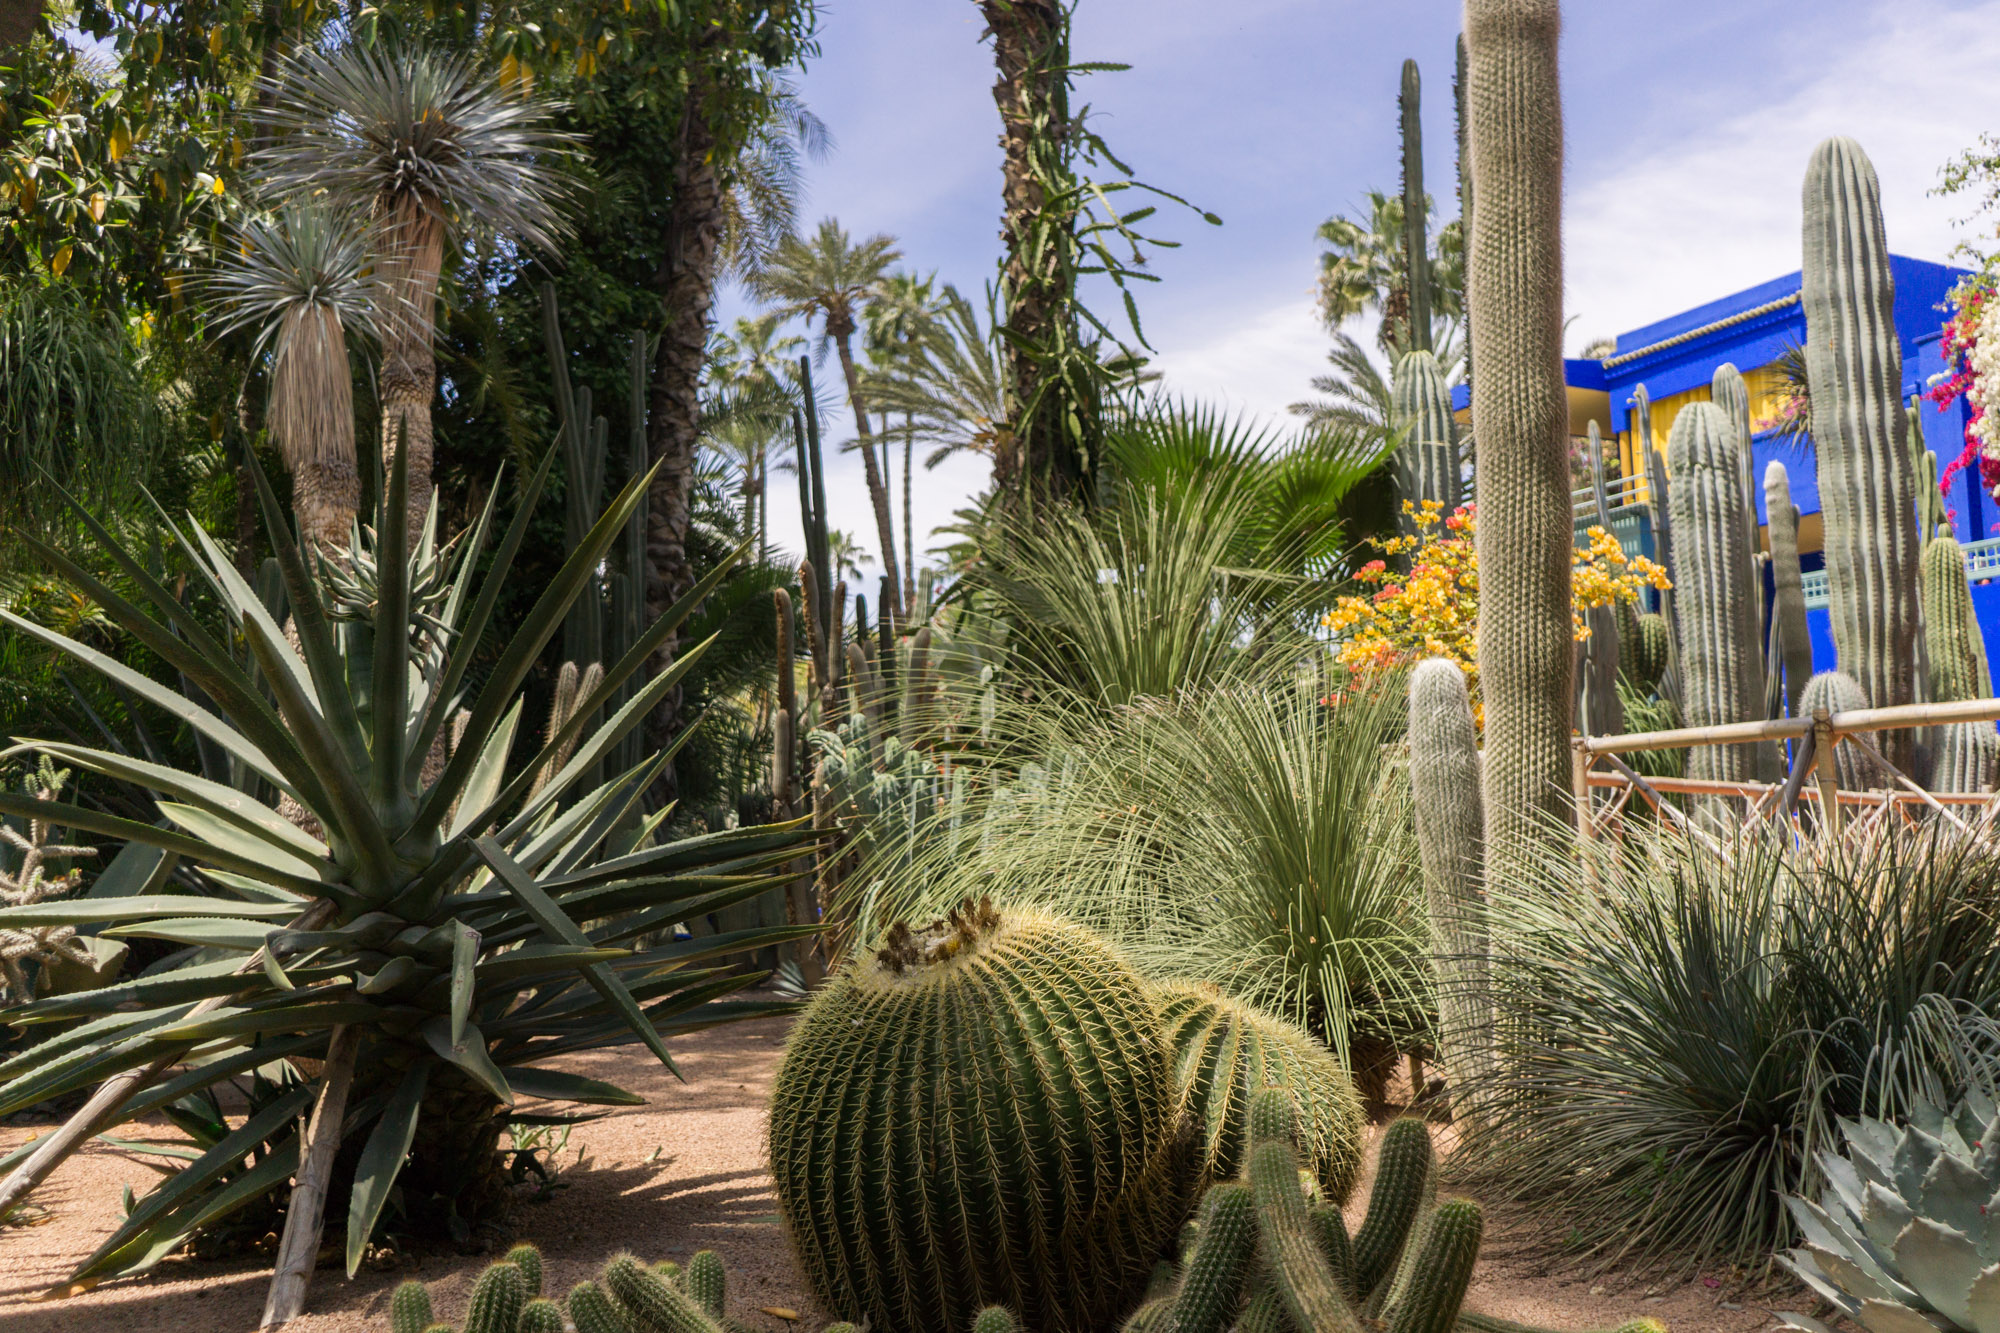 Jardin Majorelle Travel Guide | Marrakesh Travel Tips | Experience the incredible Jardin Majorelle where Yves Saint Laurent once lived with this inspiring travel guide.